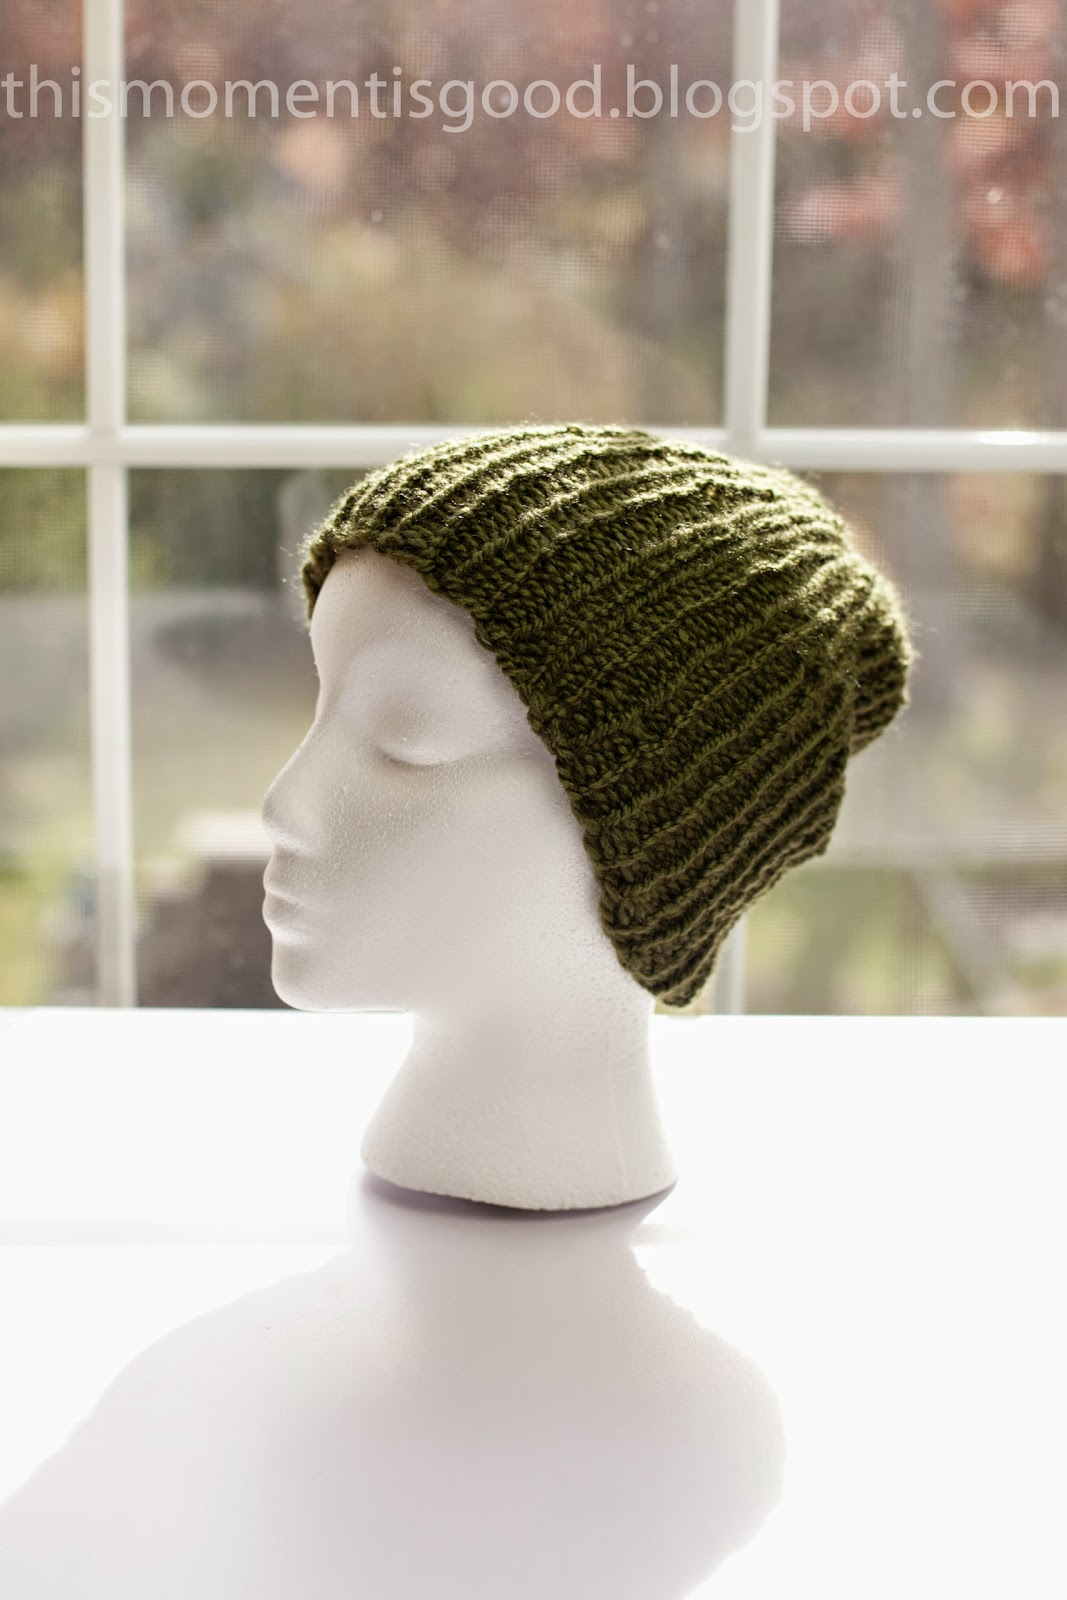 Knitting Loom Hat Stitches : Loom Knitting by This Moment is Good!: LOOM KNIT MENS RIBBED BEANIE...